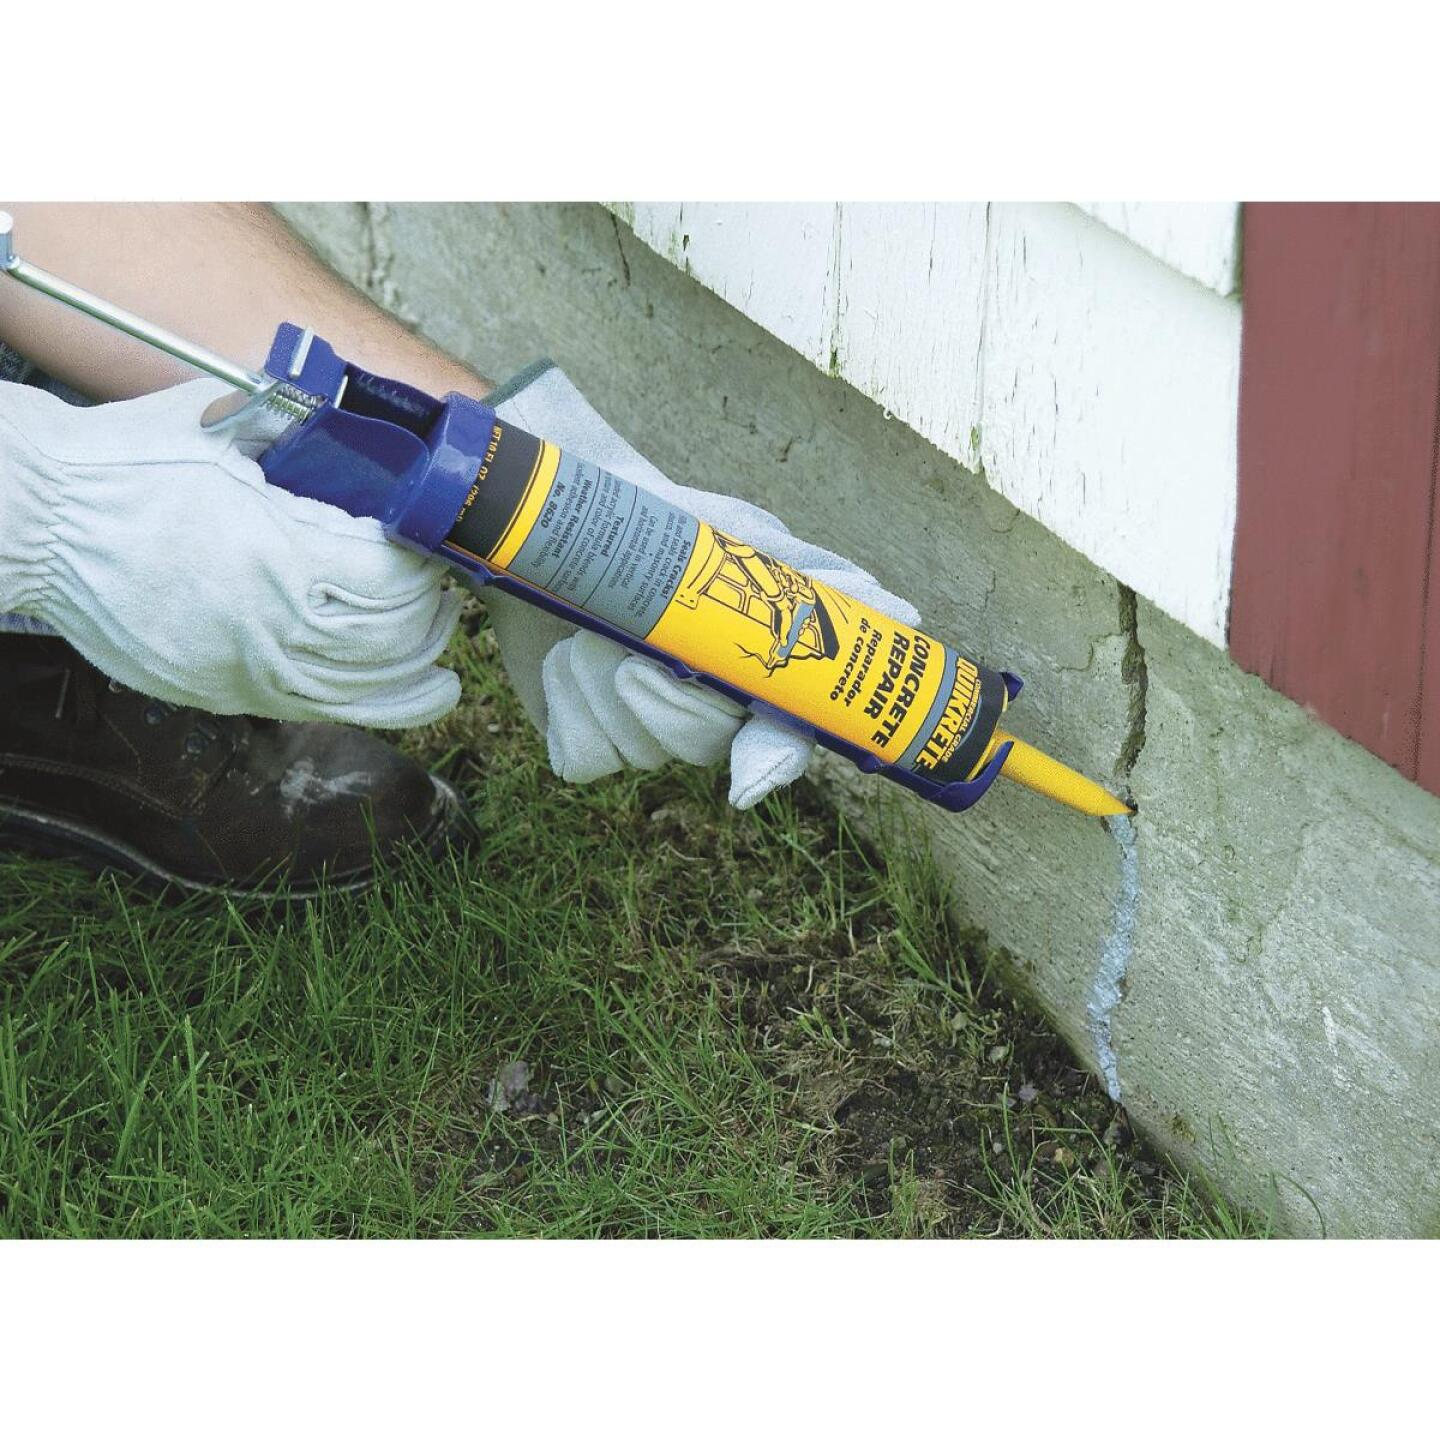 Quikrete Ready-To-Use 10 Oz Concrete Concrete Sealant Image 3